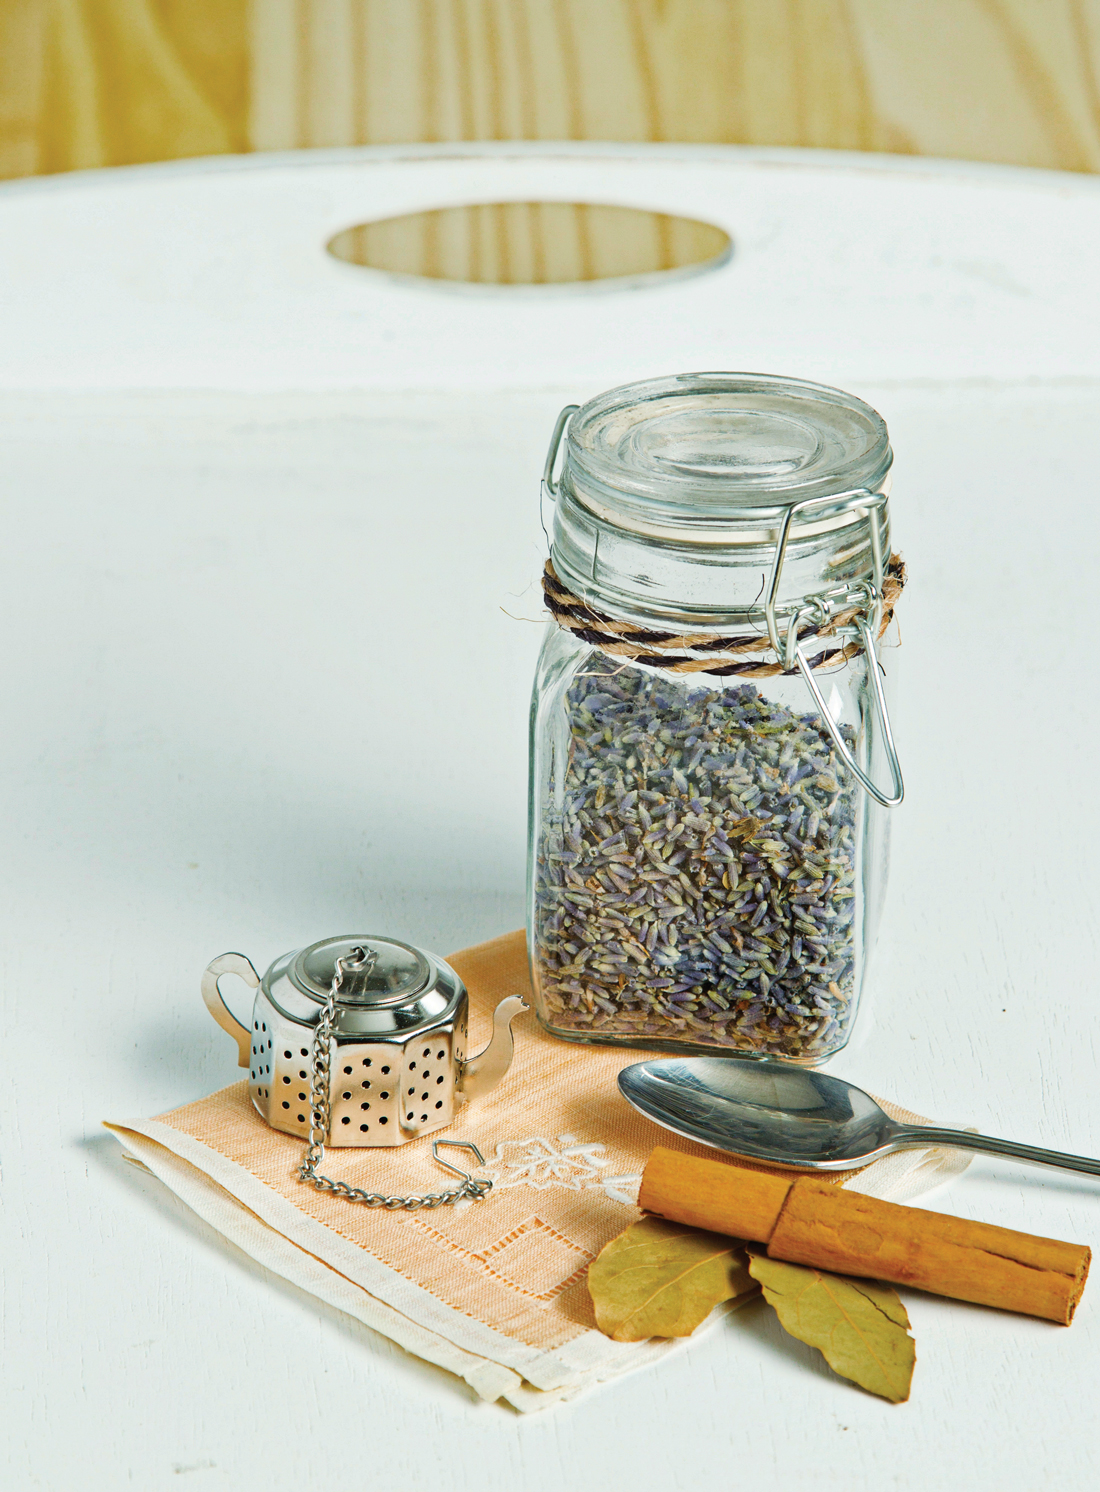 Metal teapot shaped tea diffuser, cinnamon stick, spoon, glass canister filled with lavender.